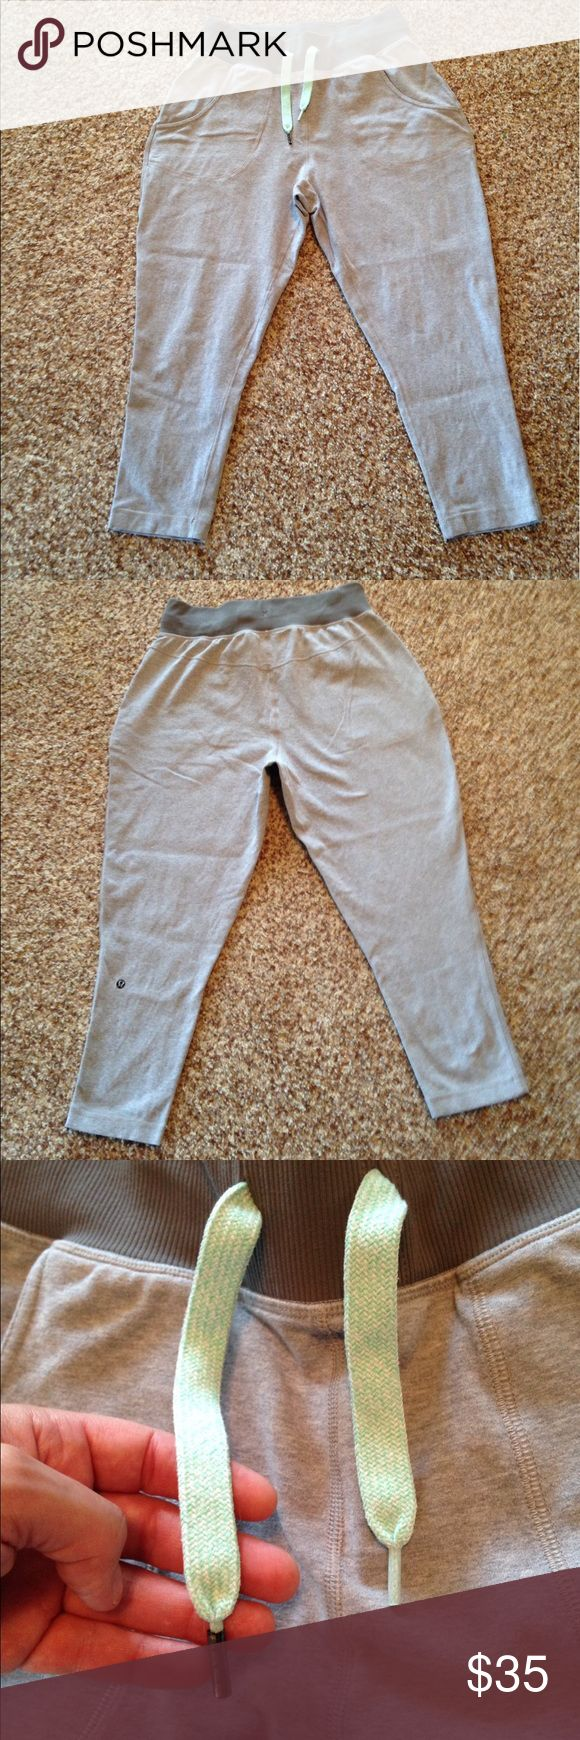 Lululemon pants Excellent used condition. Crop length Lululemon pant. Two front pockets. Drawstring waist. One of the metal wraps came of the one string shown in one of the photos. Light gray with a dark gray waistband. Pretty light green/blue drawstring. lululemon athletica Pants Ankle & Cropped